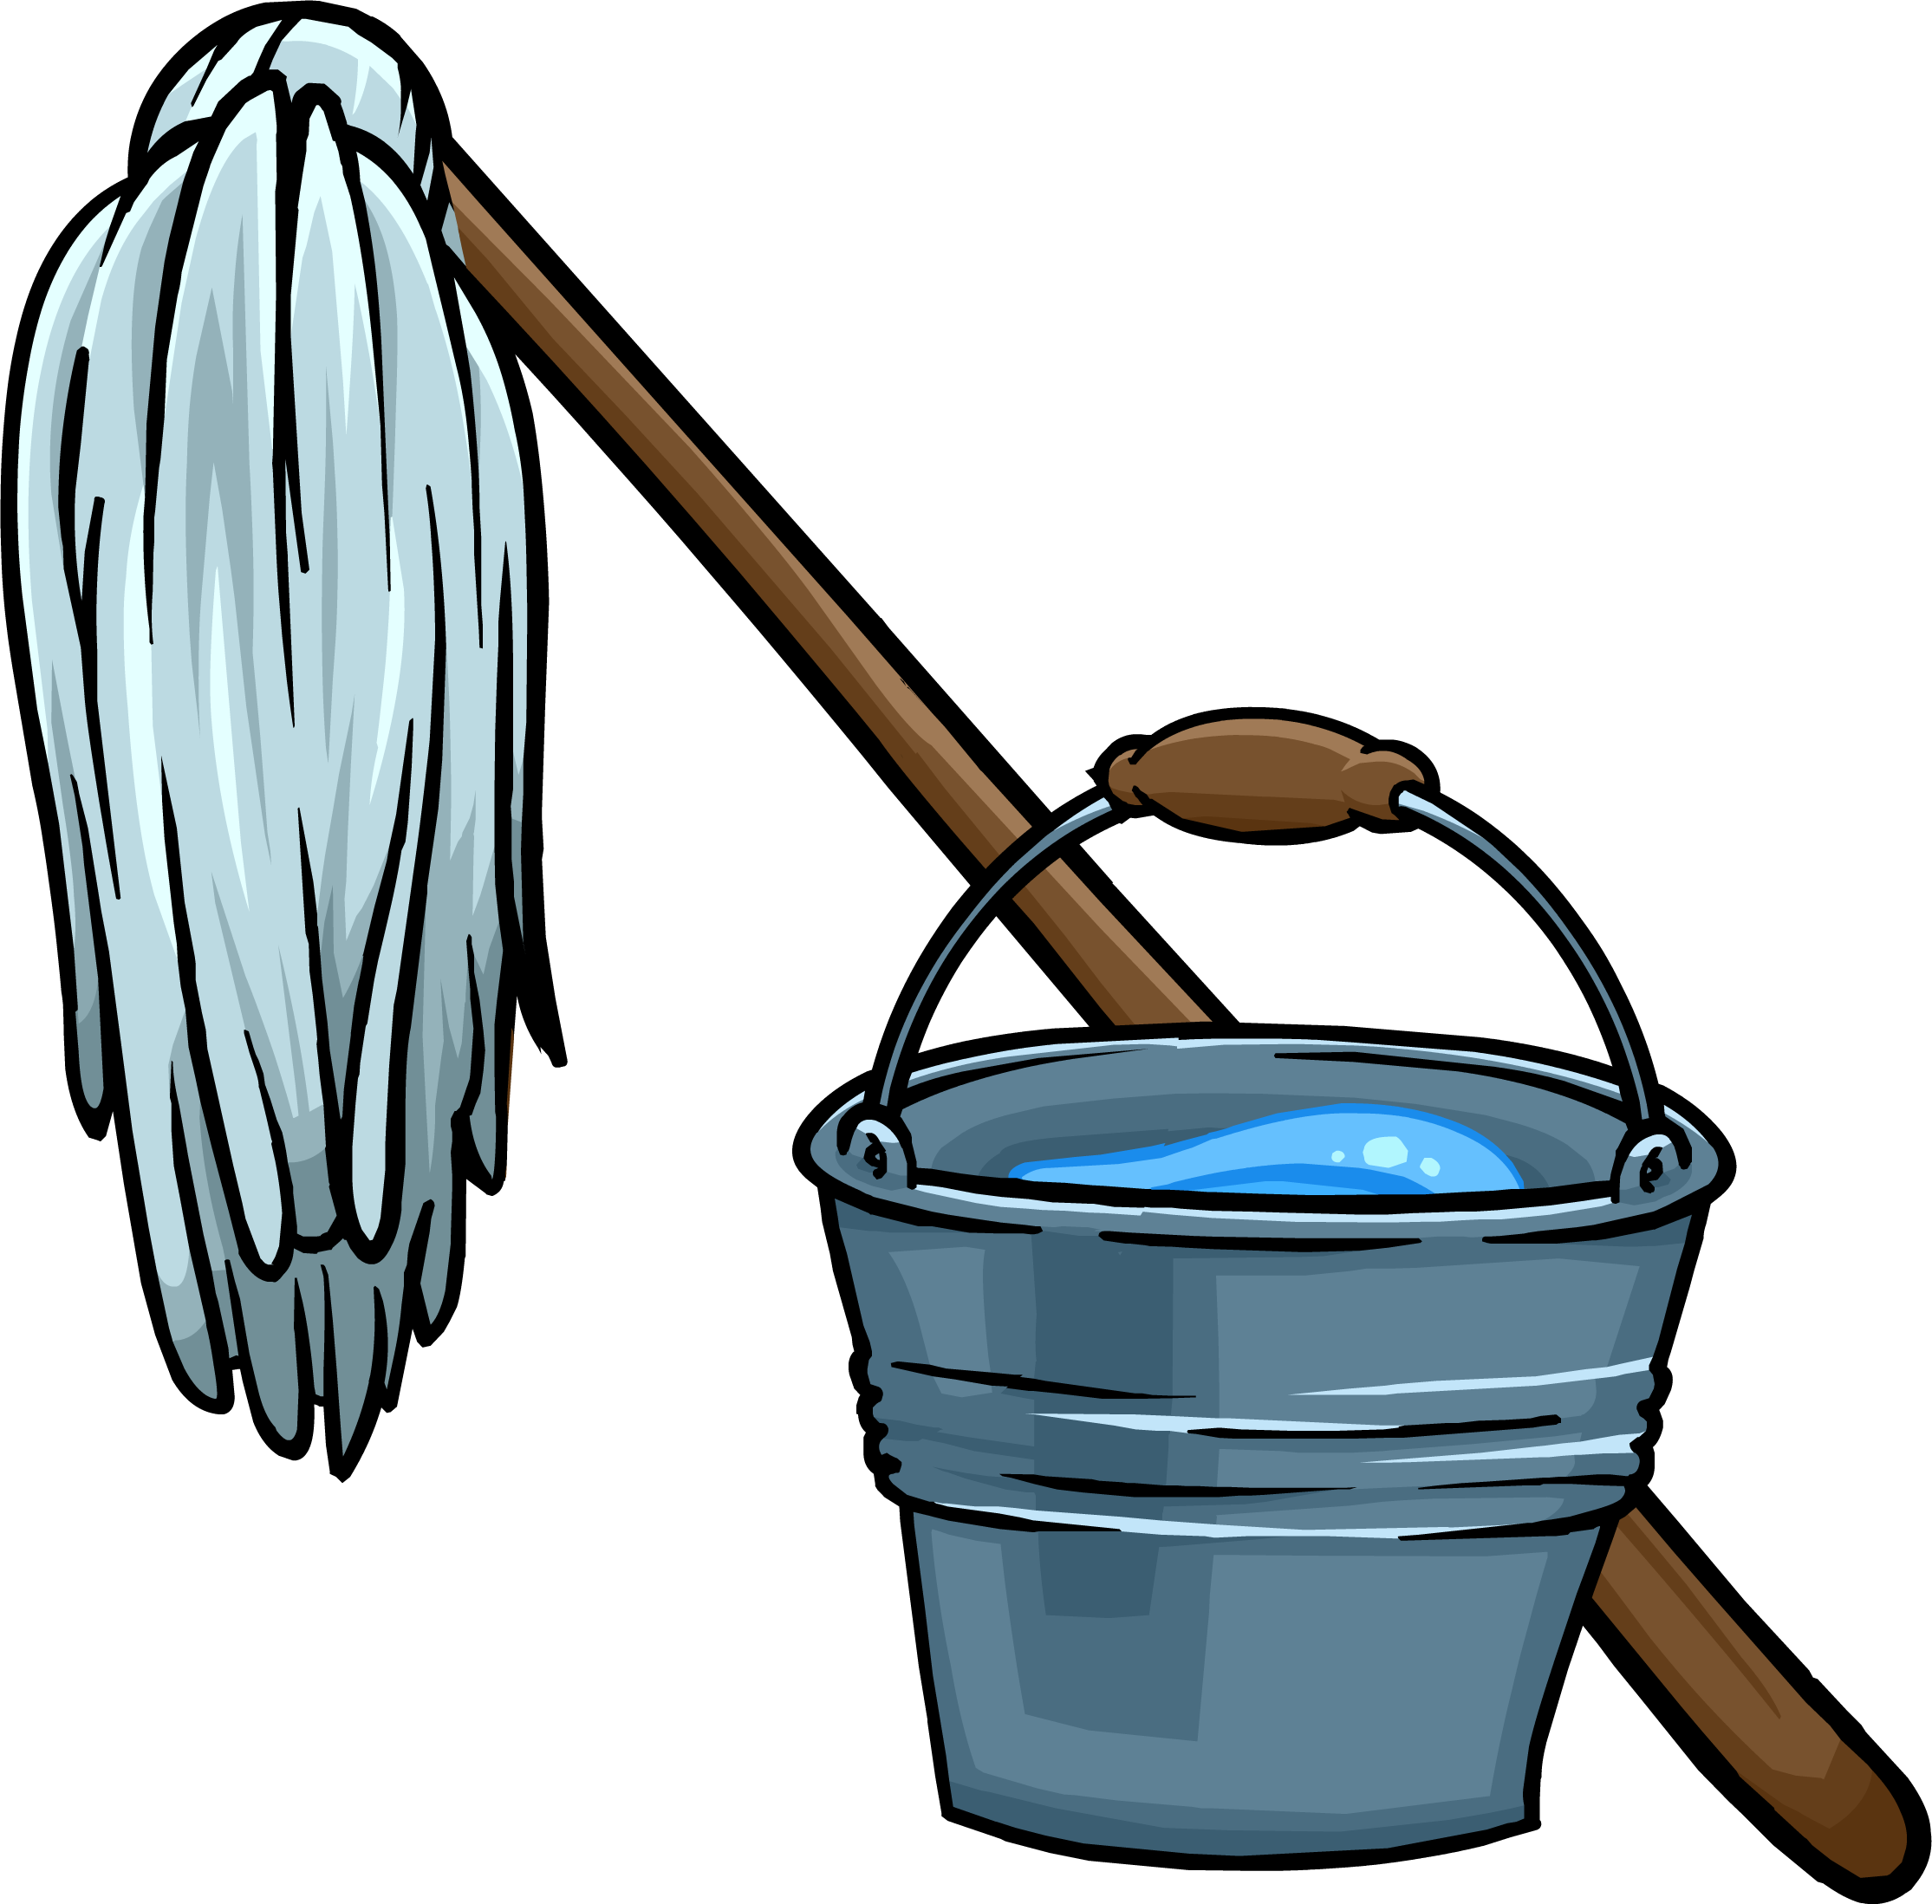 607 Mop free clipart.